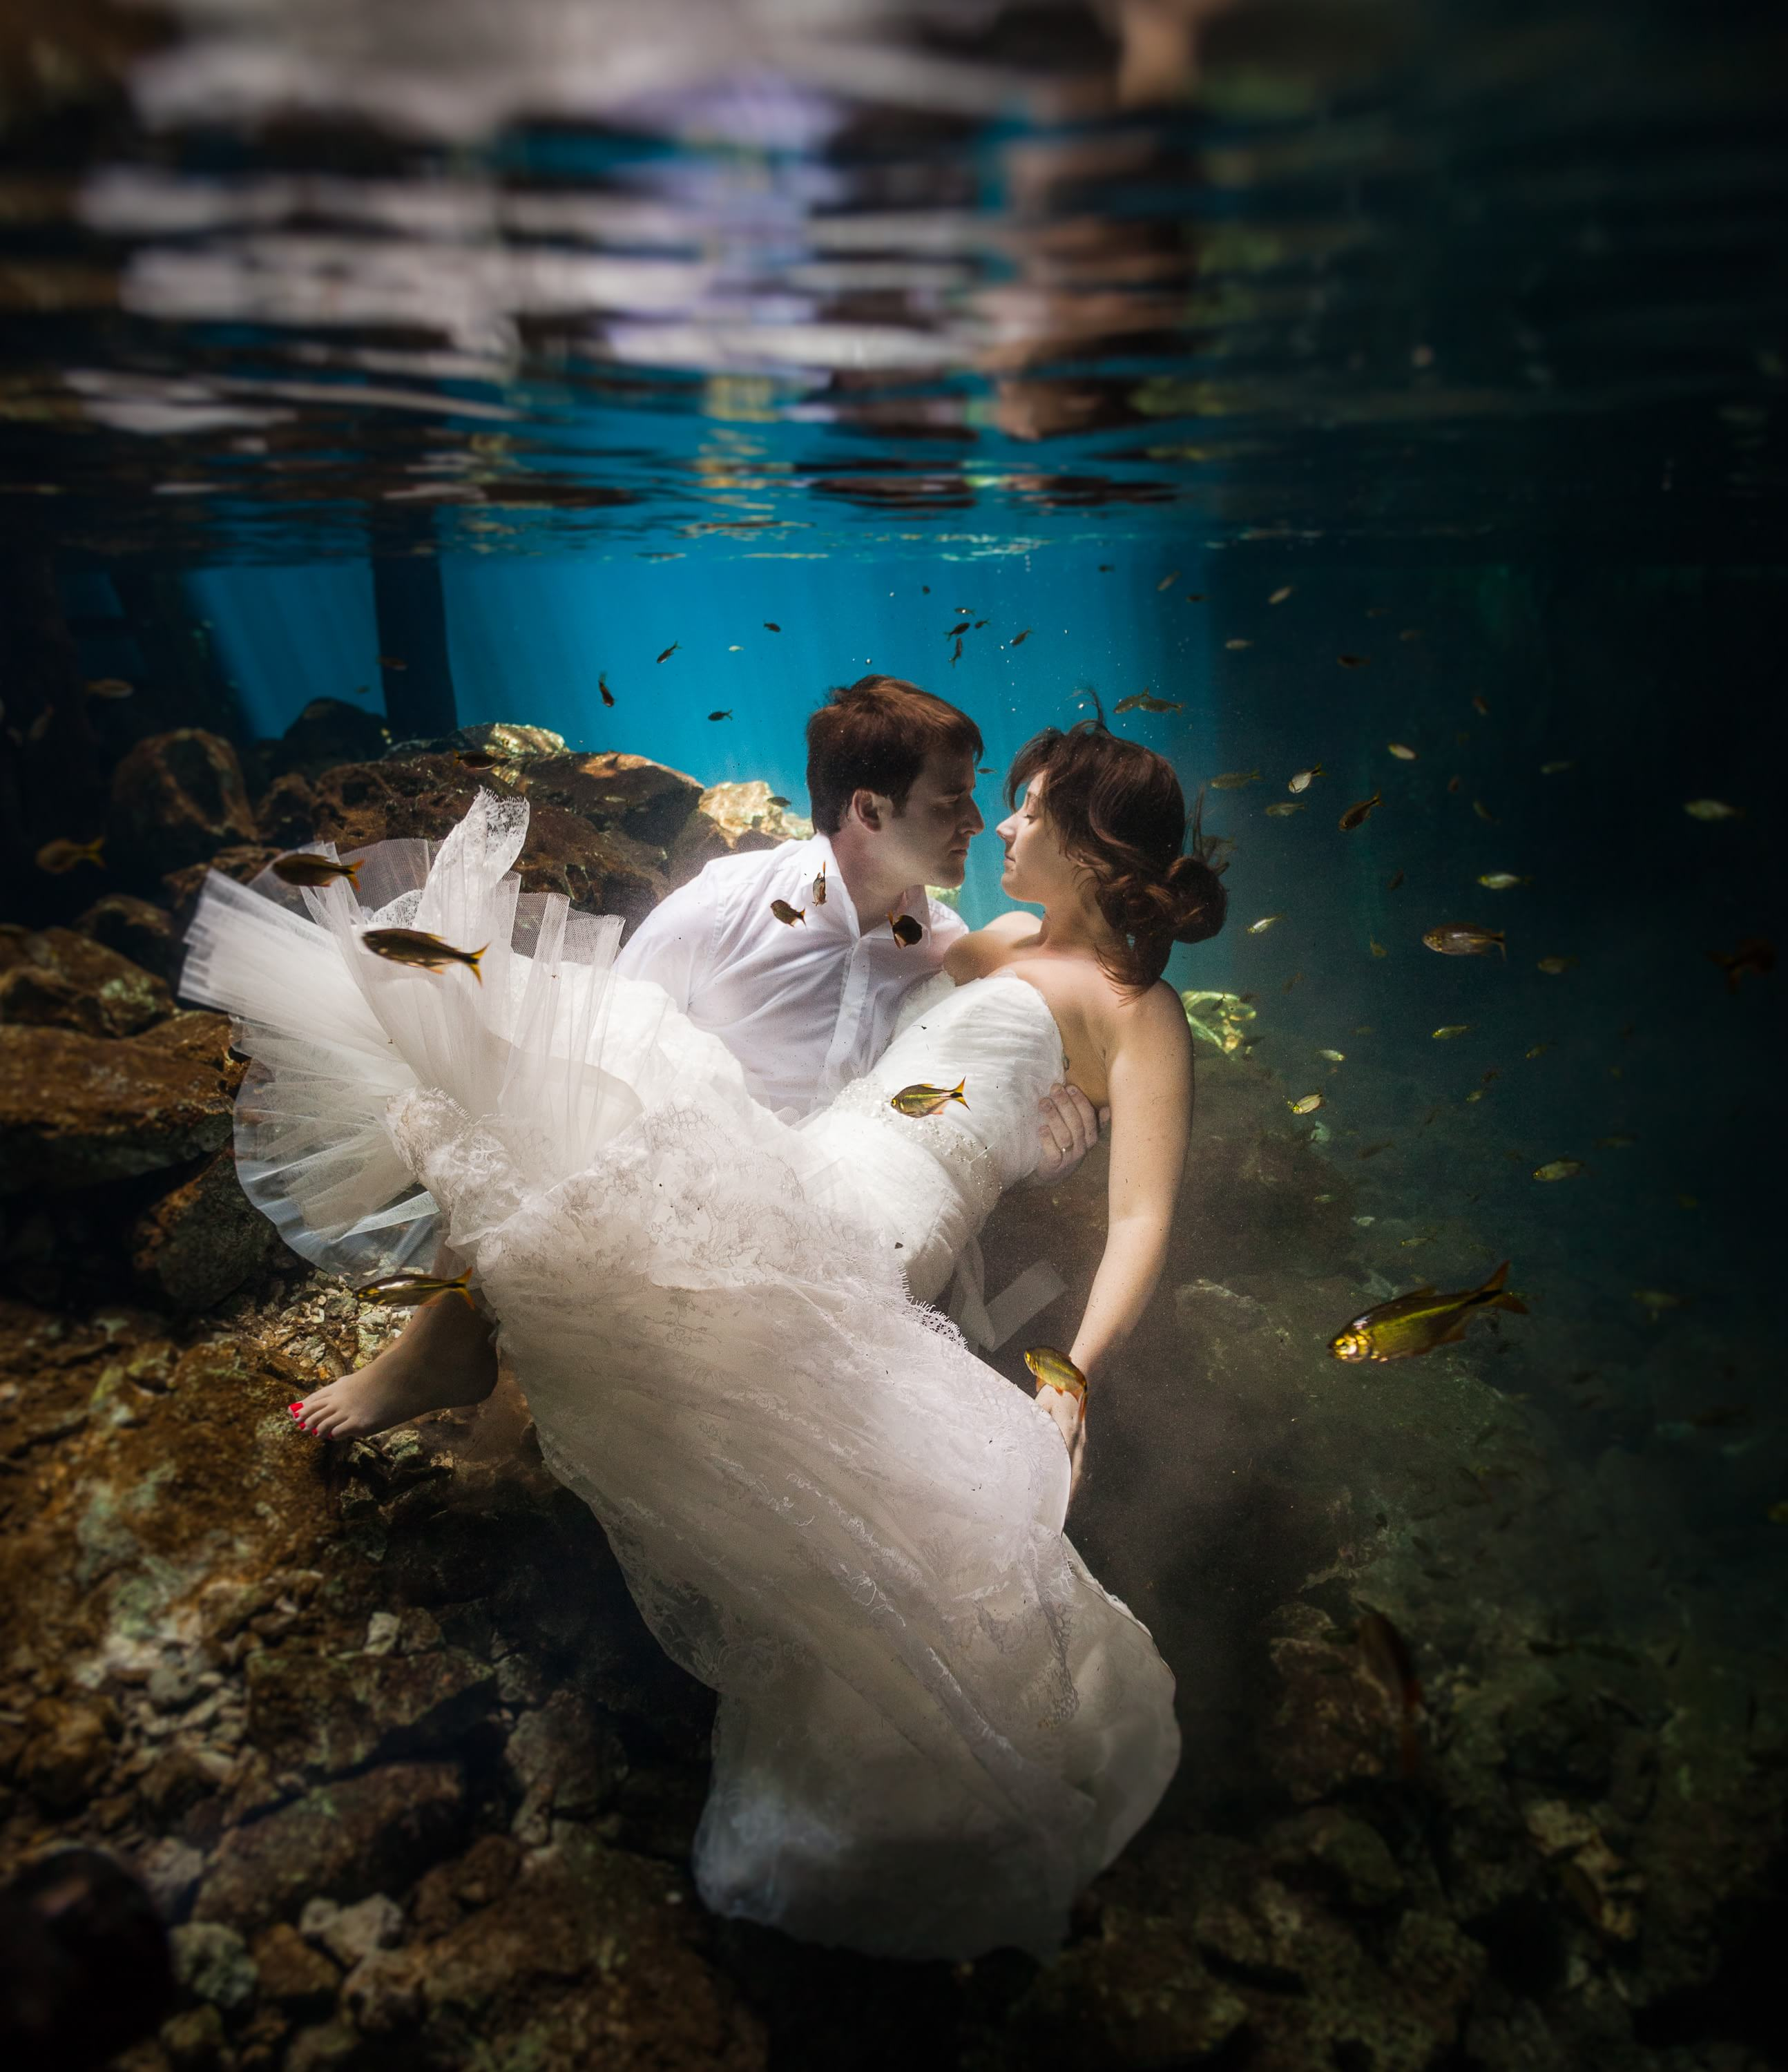 Underwater trash the dress